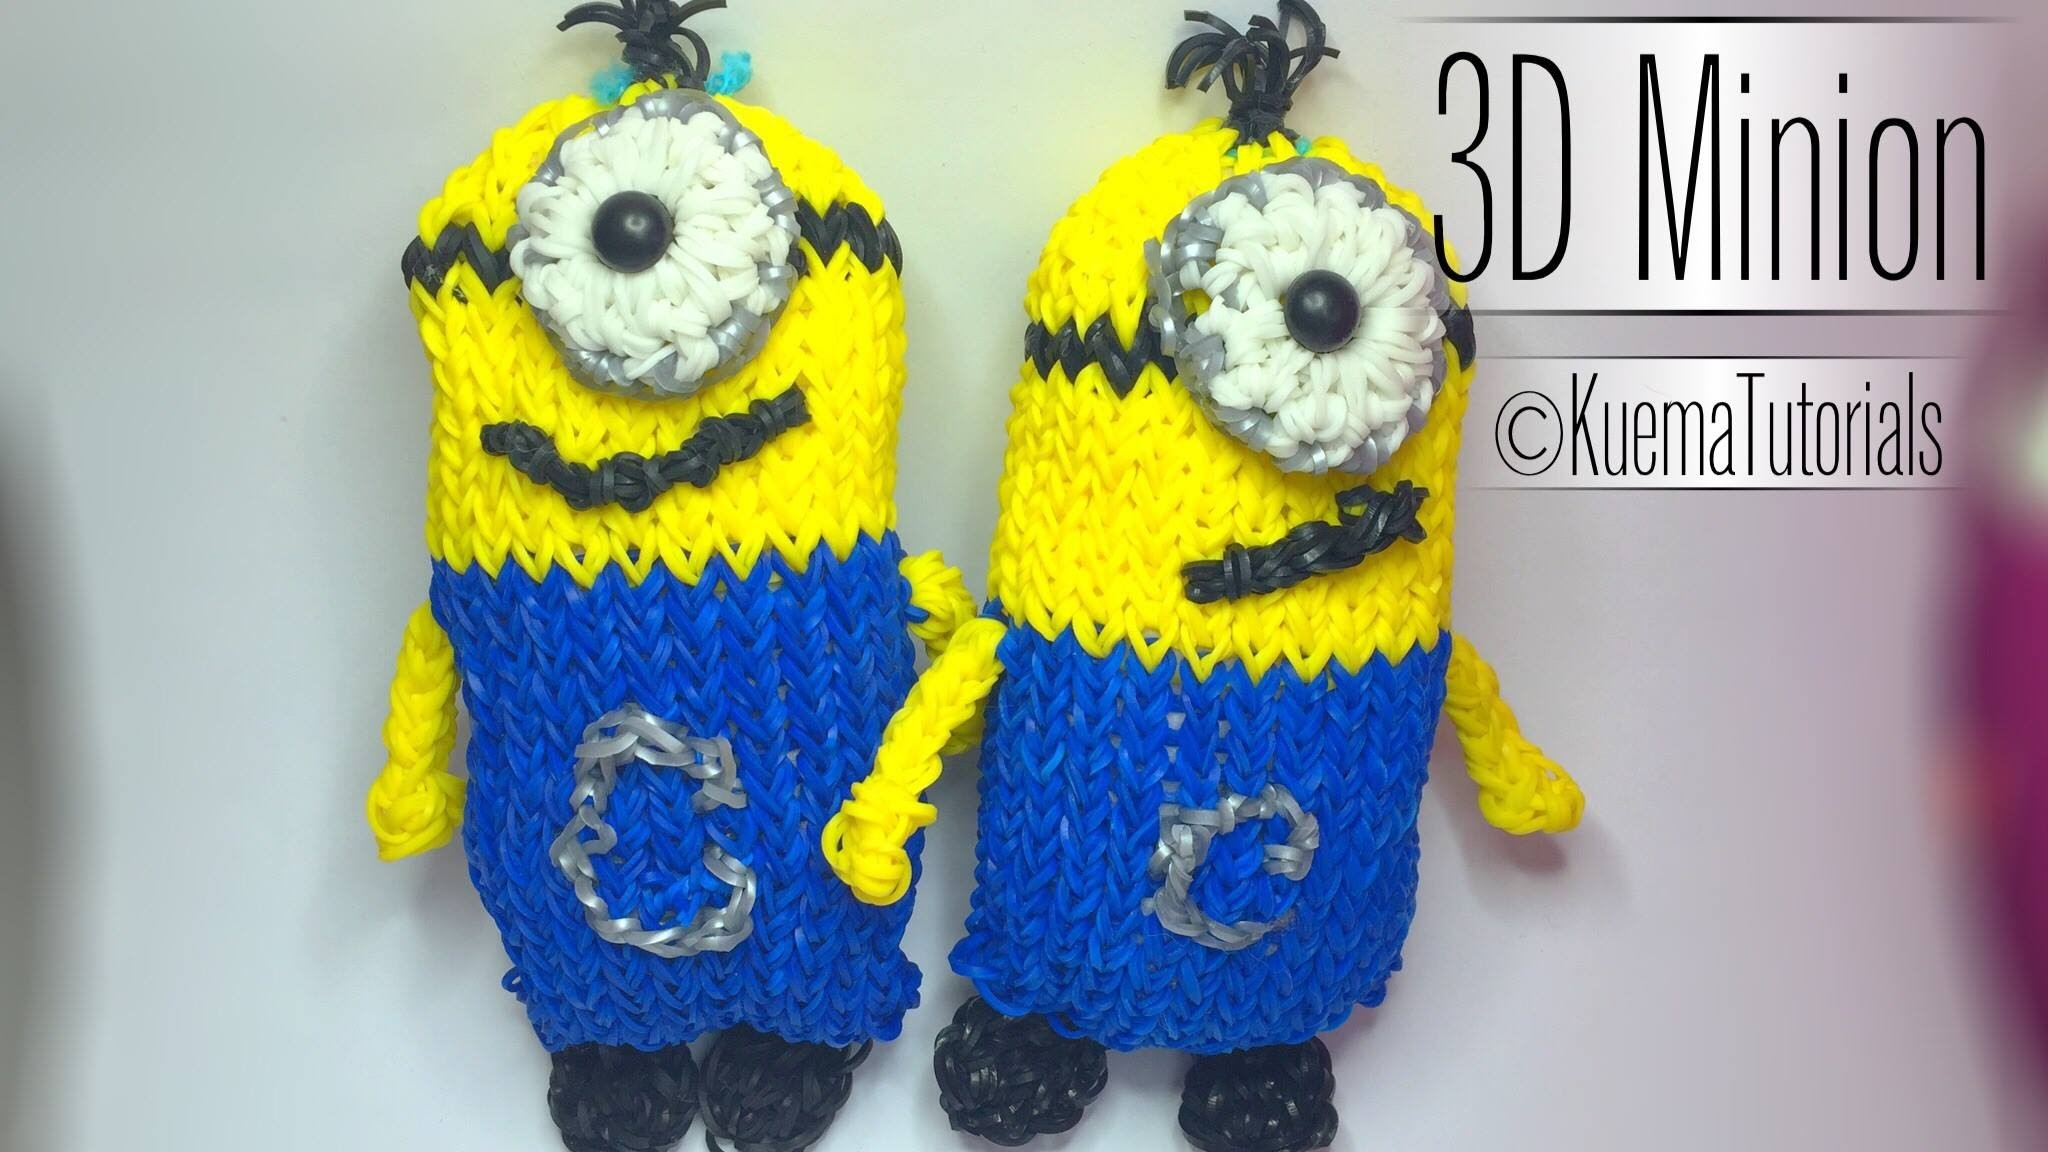 Rainbow Loom grosses 3D Minion - easy Big 3D Minion ( ENG SUB)